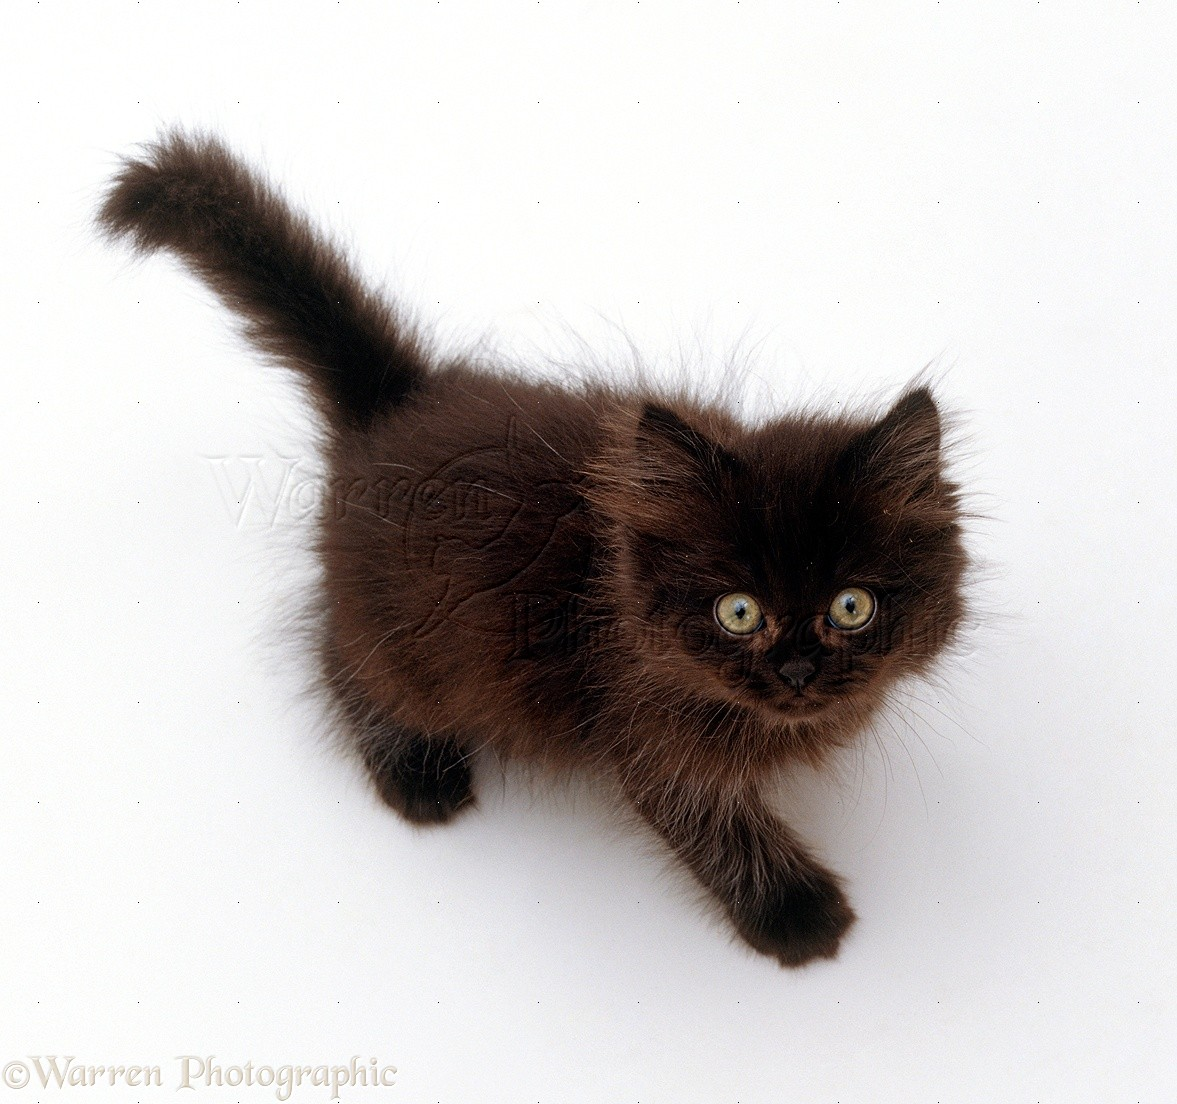 Chocolate Fluffy Kitten Looking Up Viewed From Above